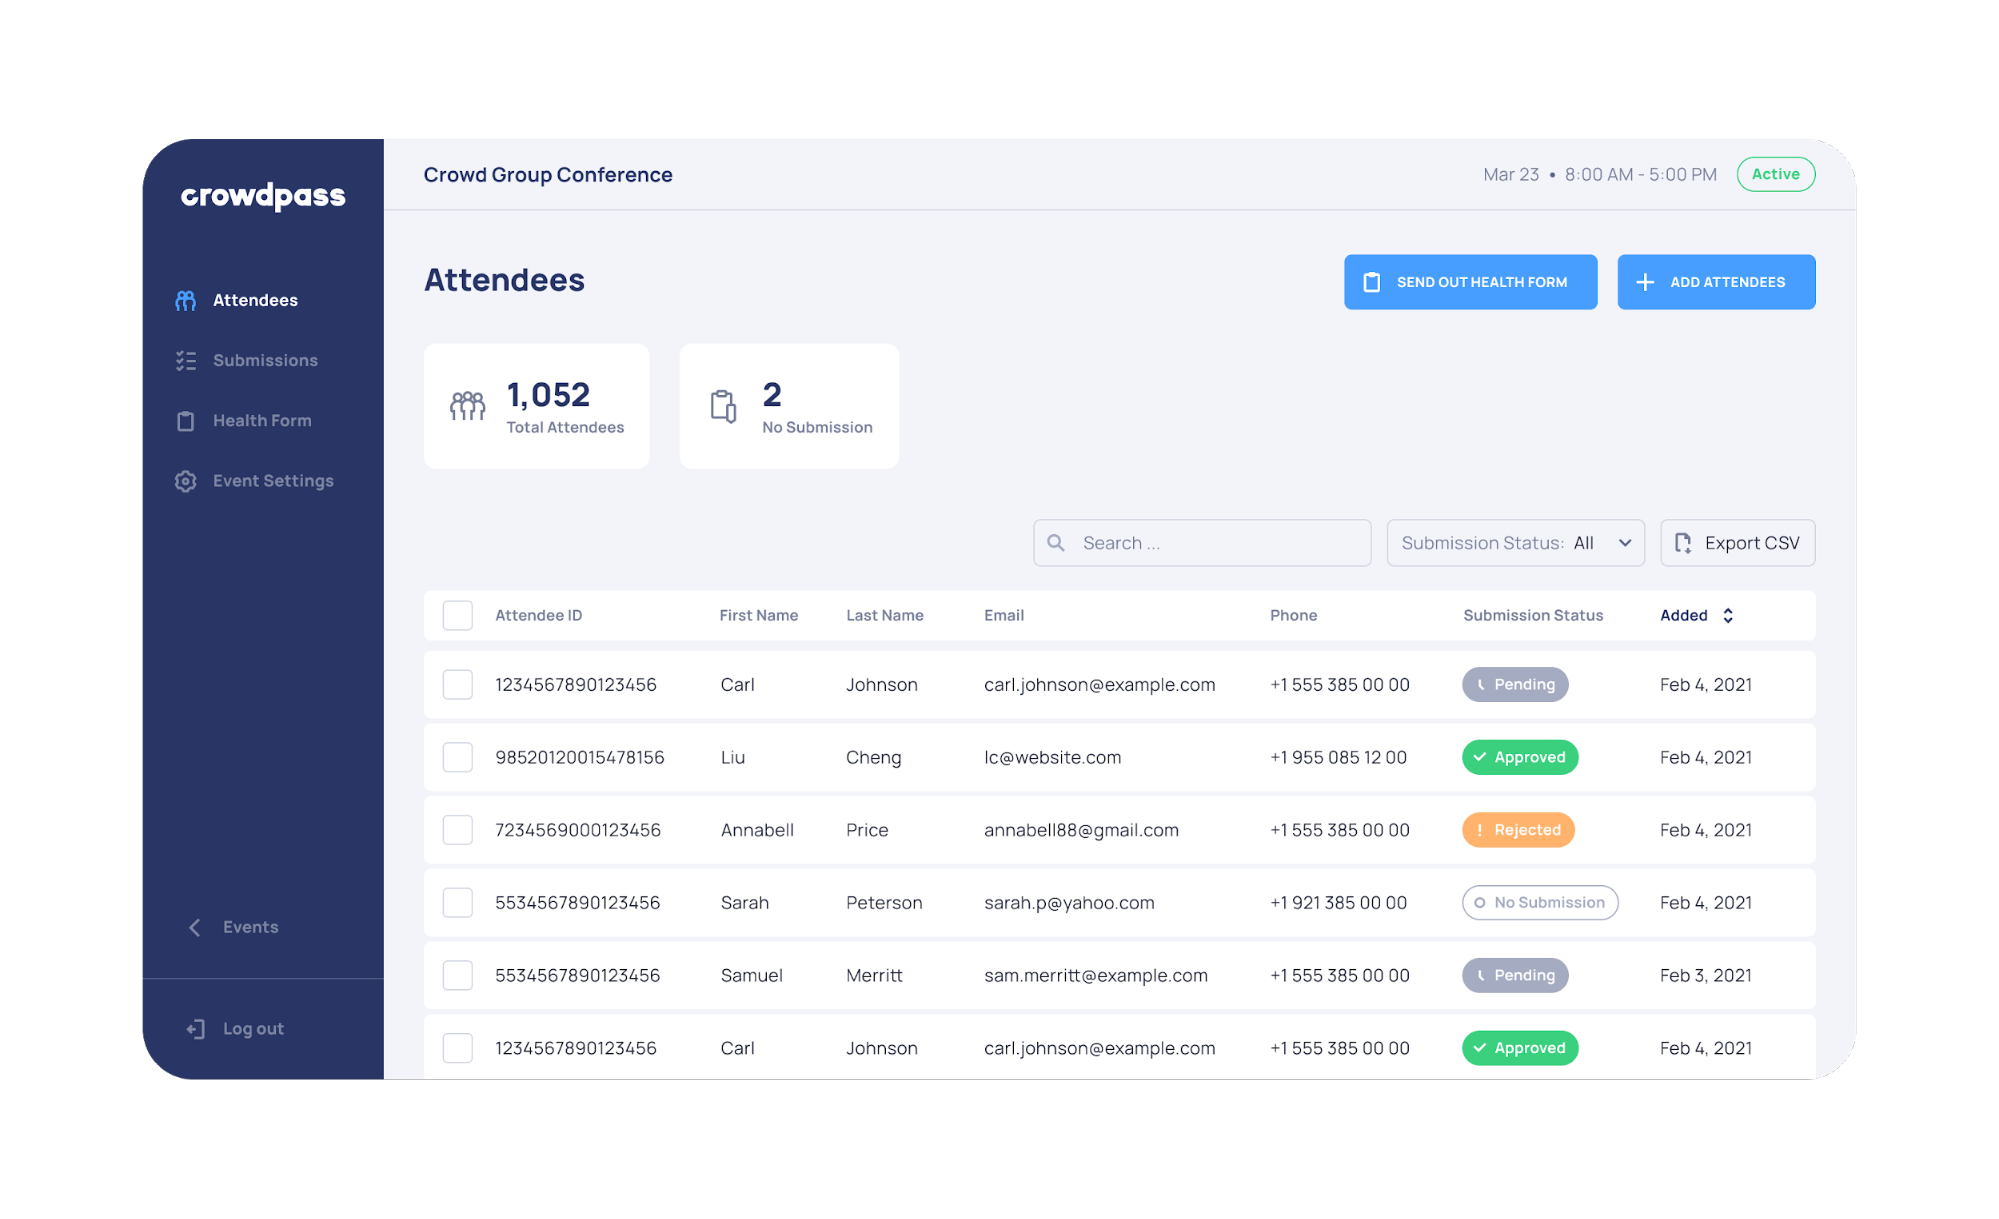 Admin Feature 5 - Export Data of Attendees